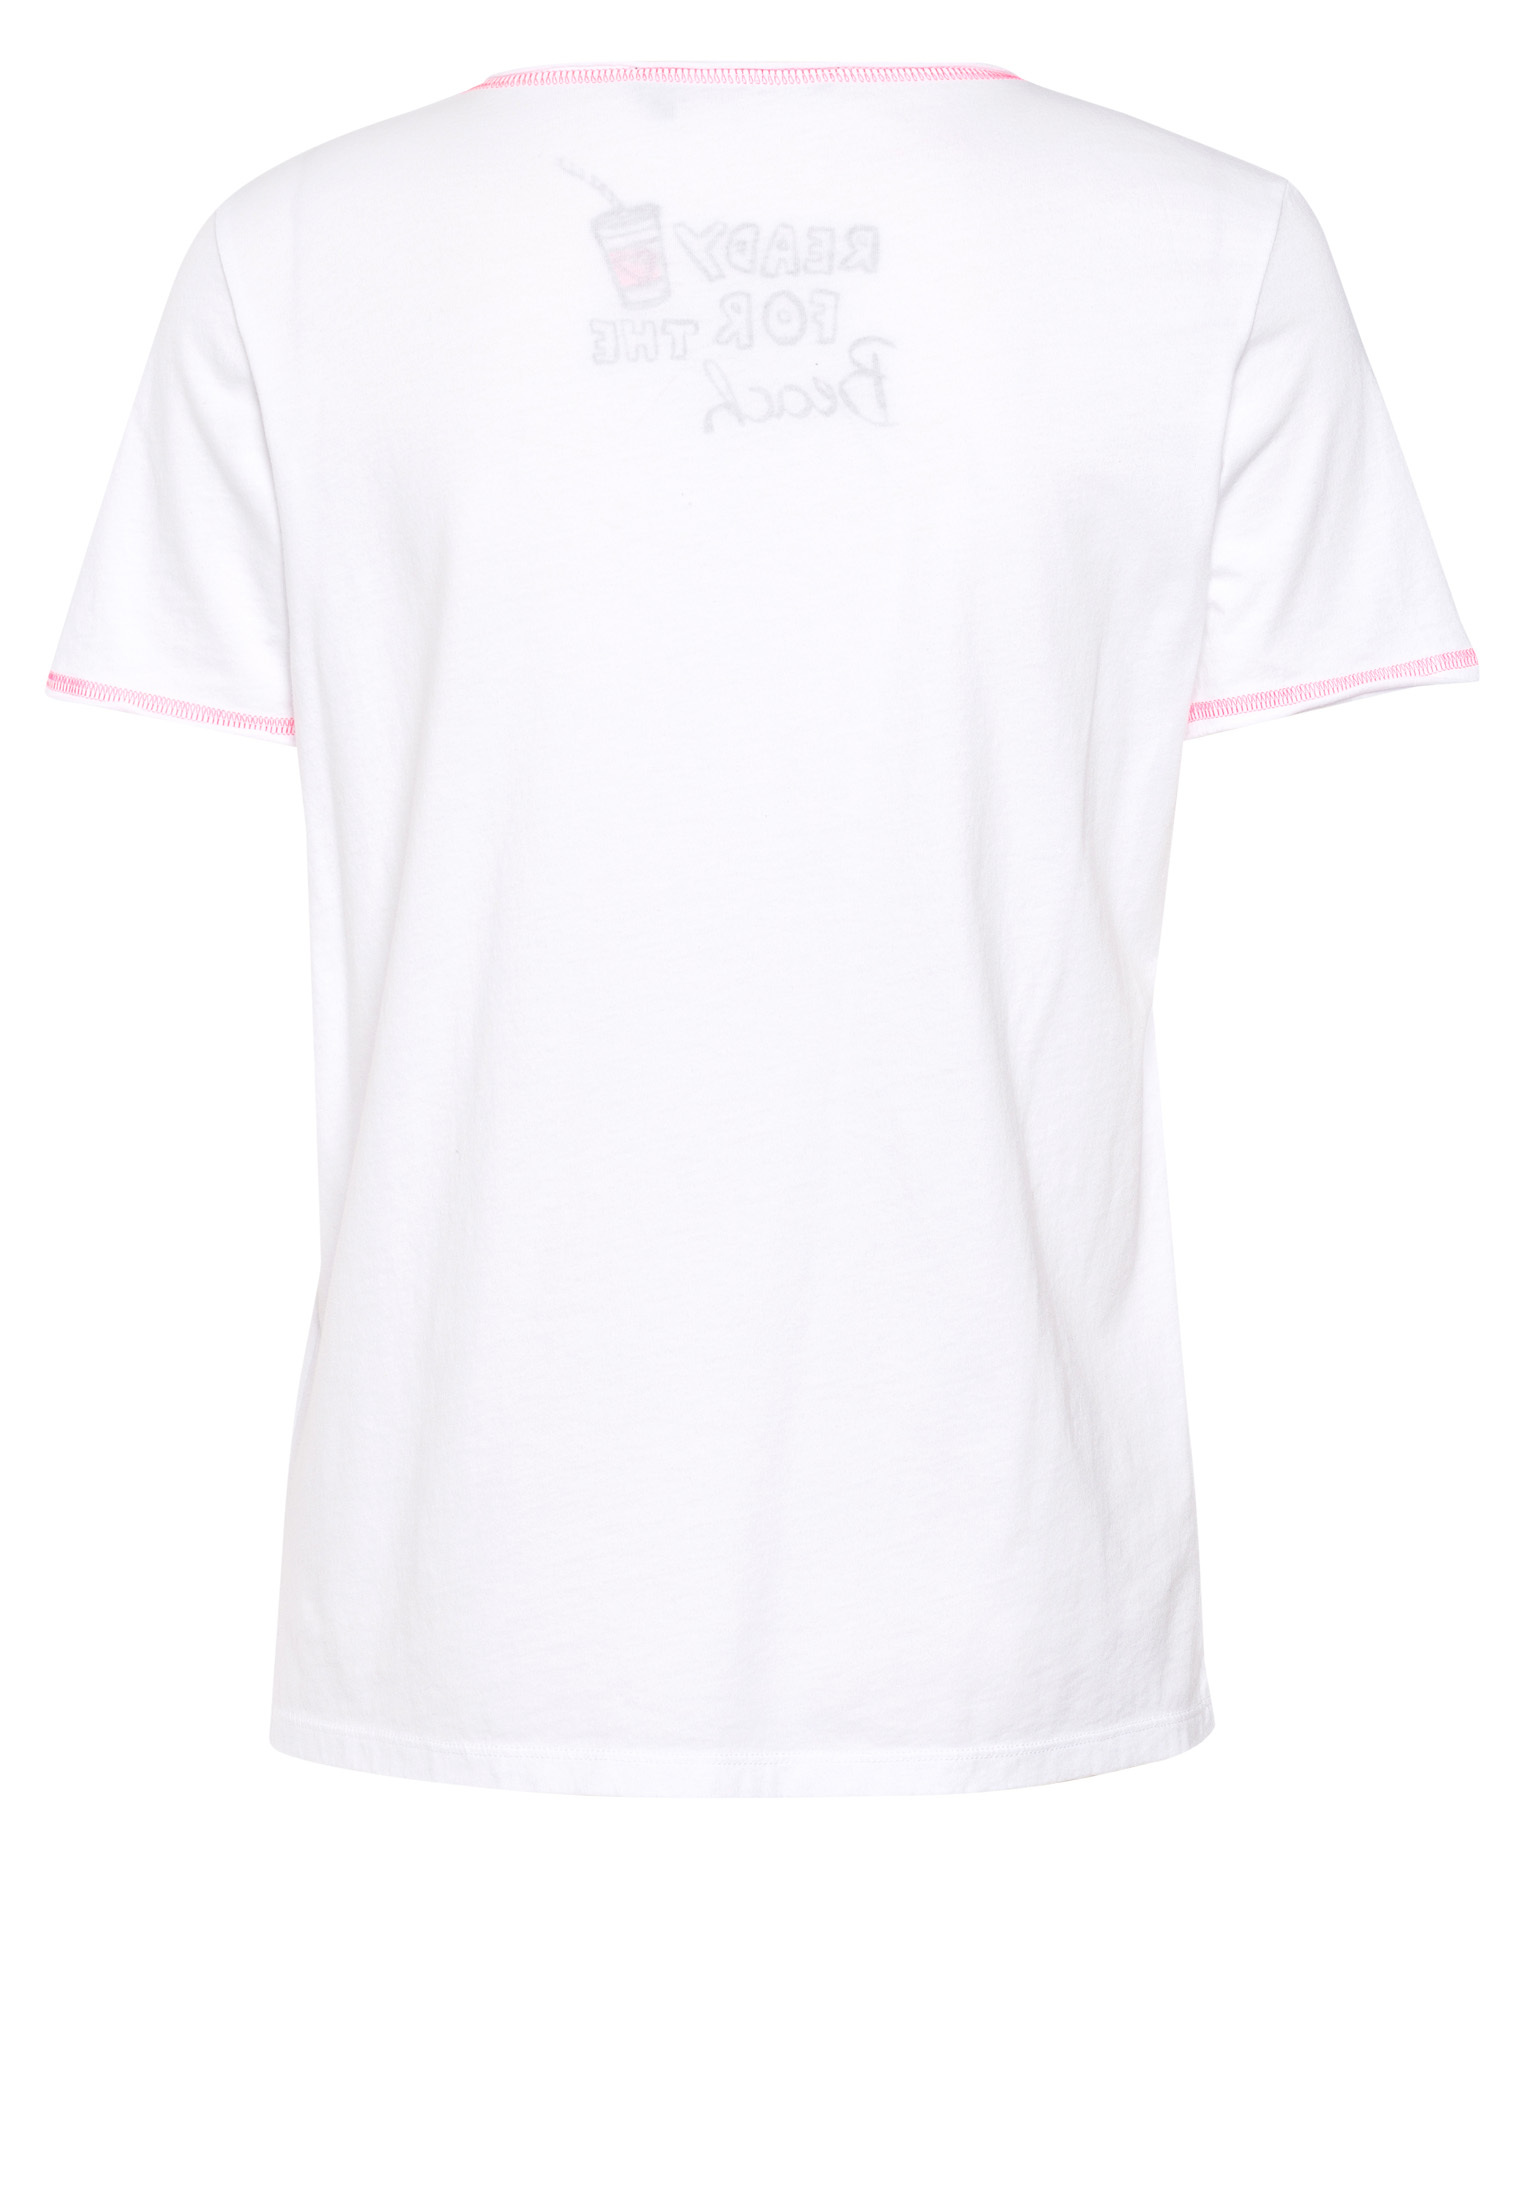 Print T Shirt With Glitter Details